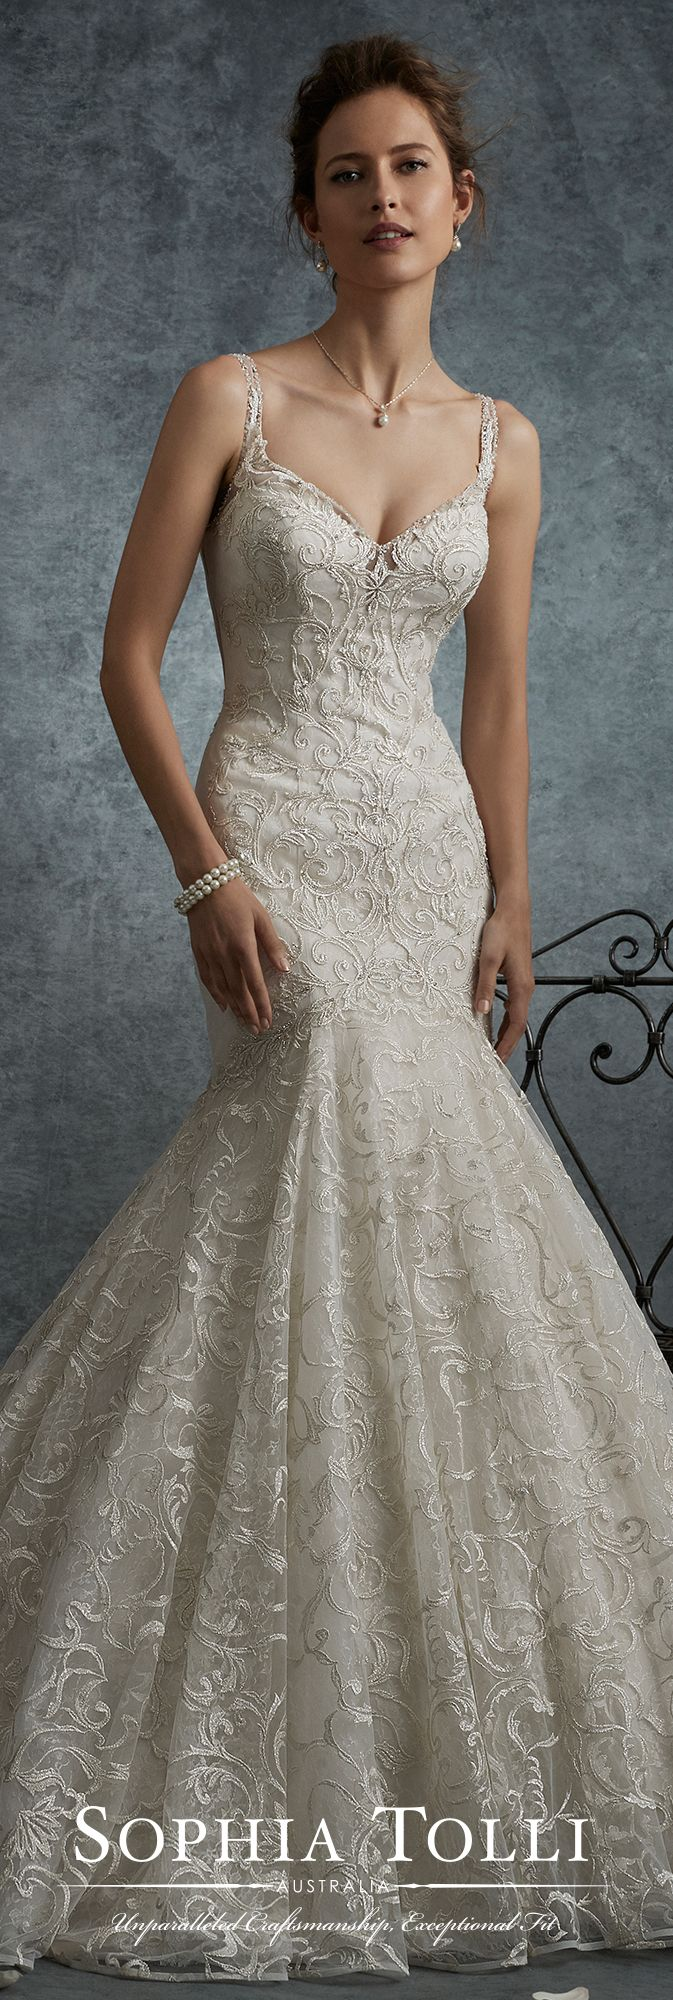 Trumpet Style Wedding Dresses Lace : Trumpet wedding dresses with lace gowns